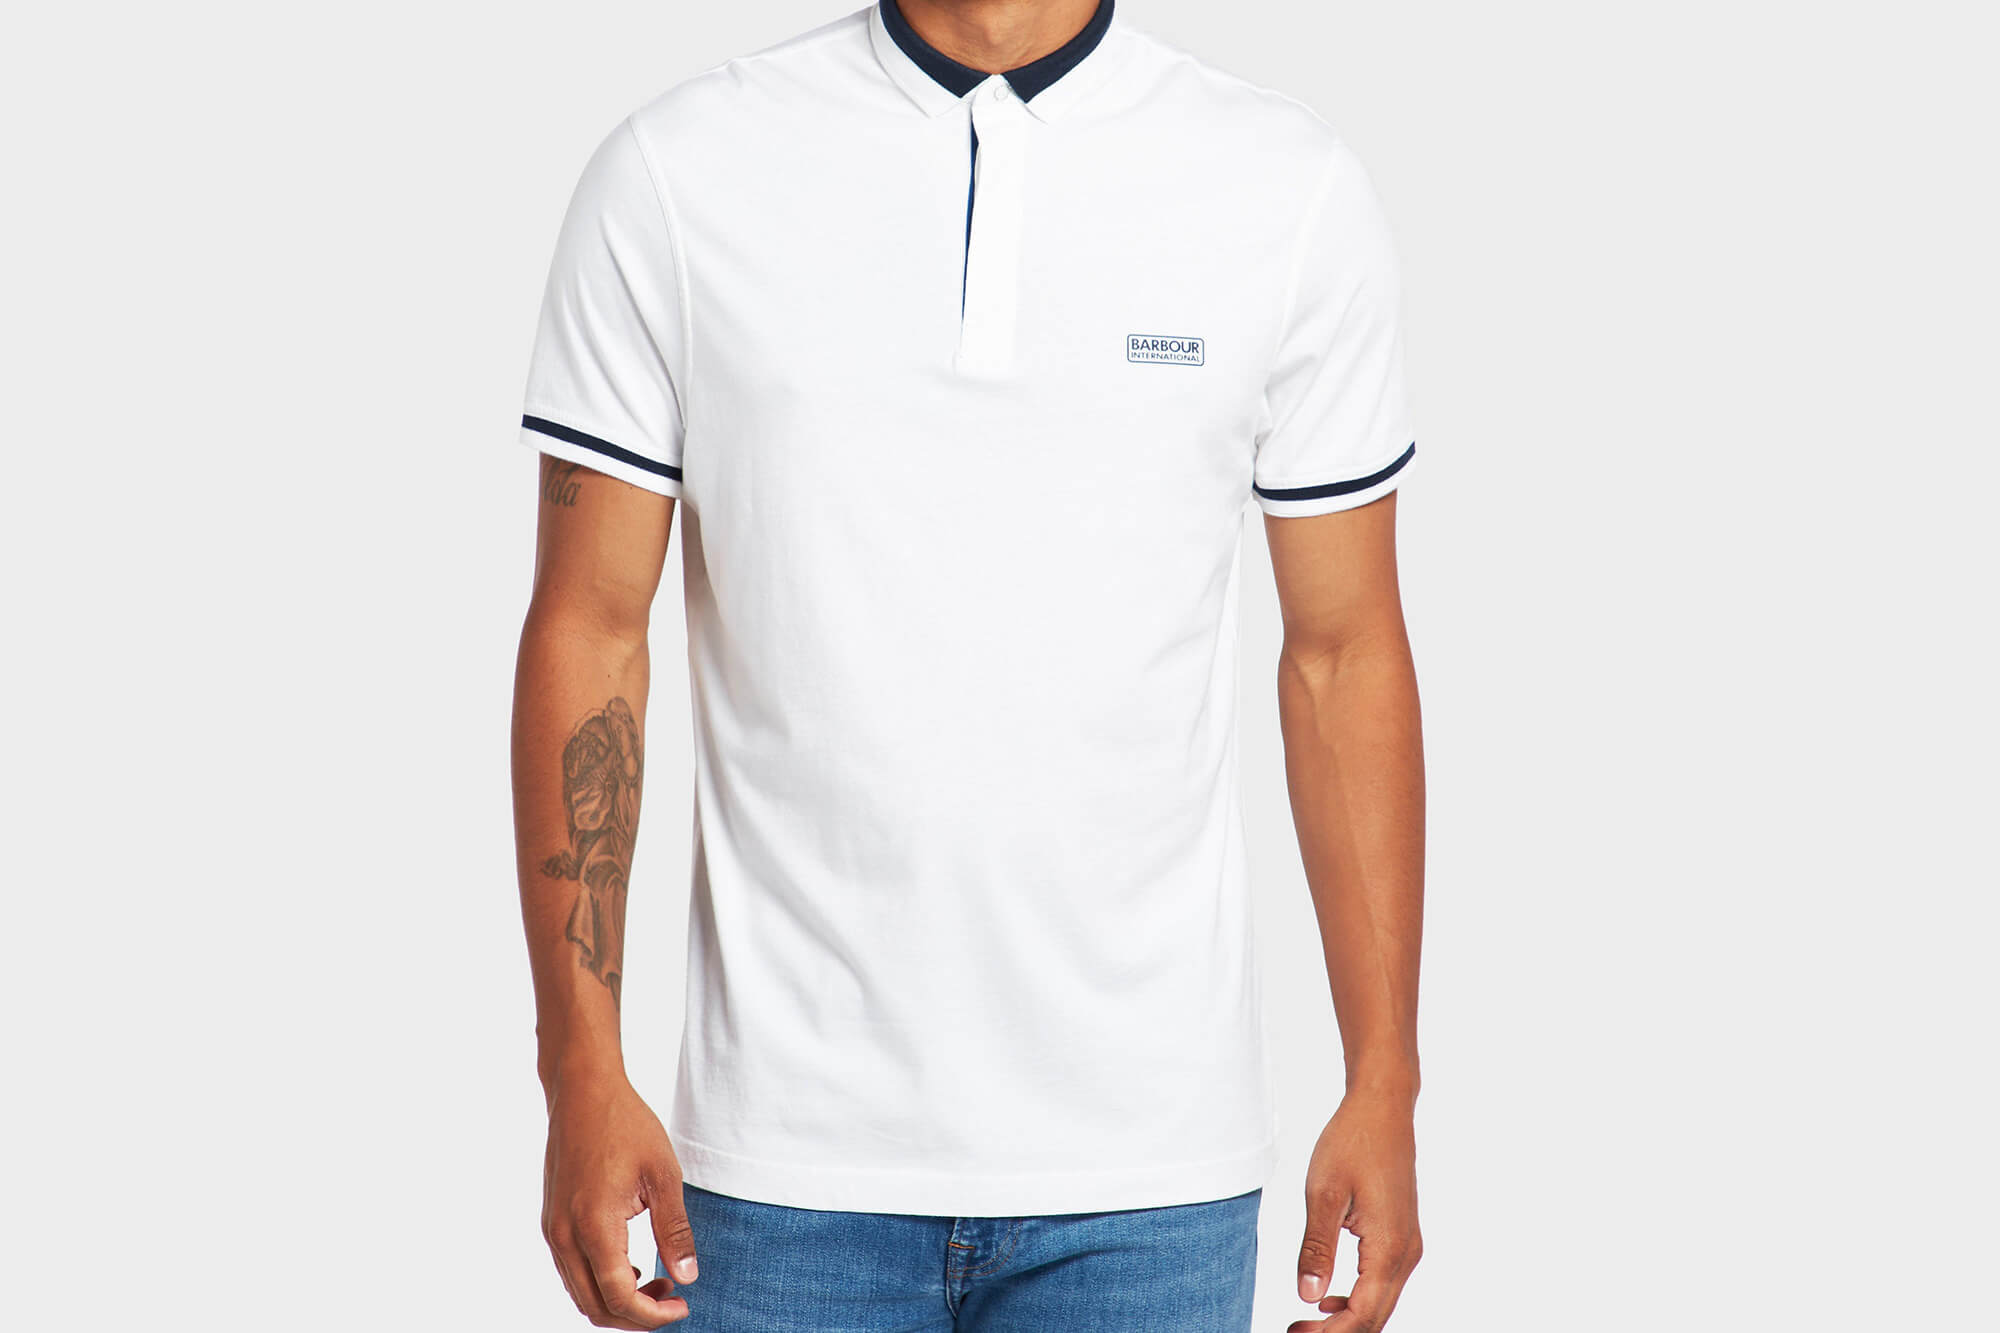 Barbour Itnl Short Sleeved Polo